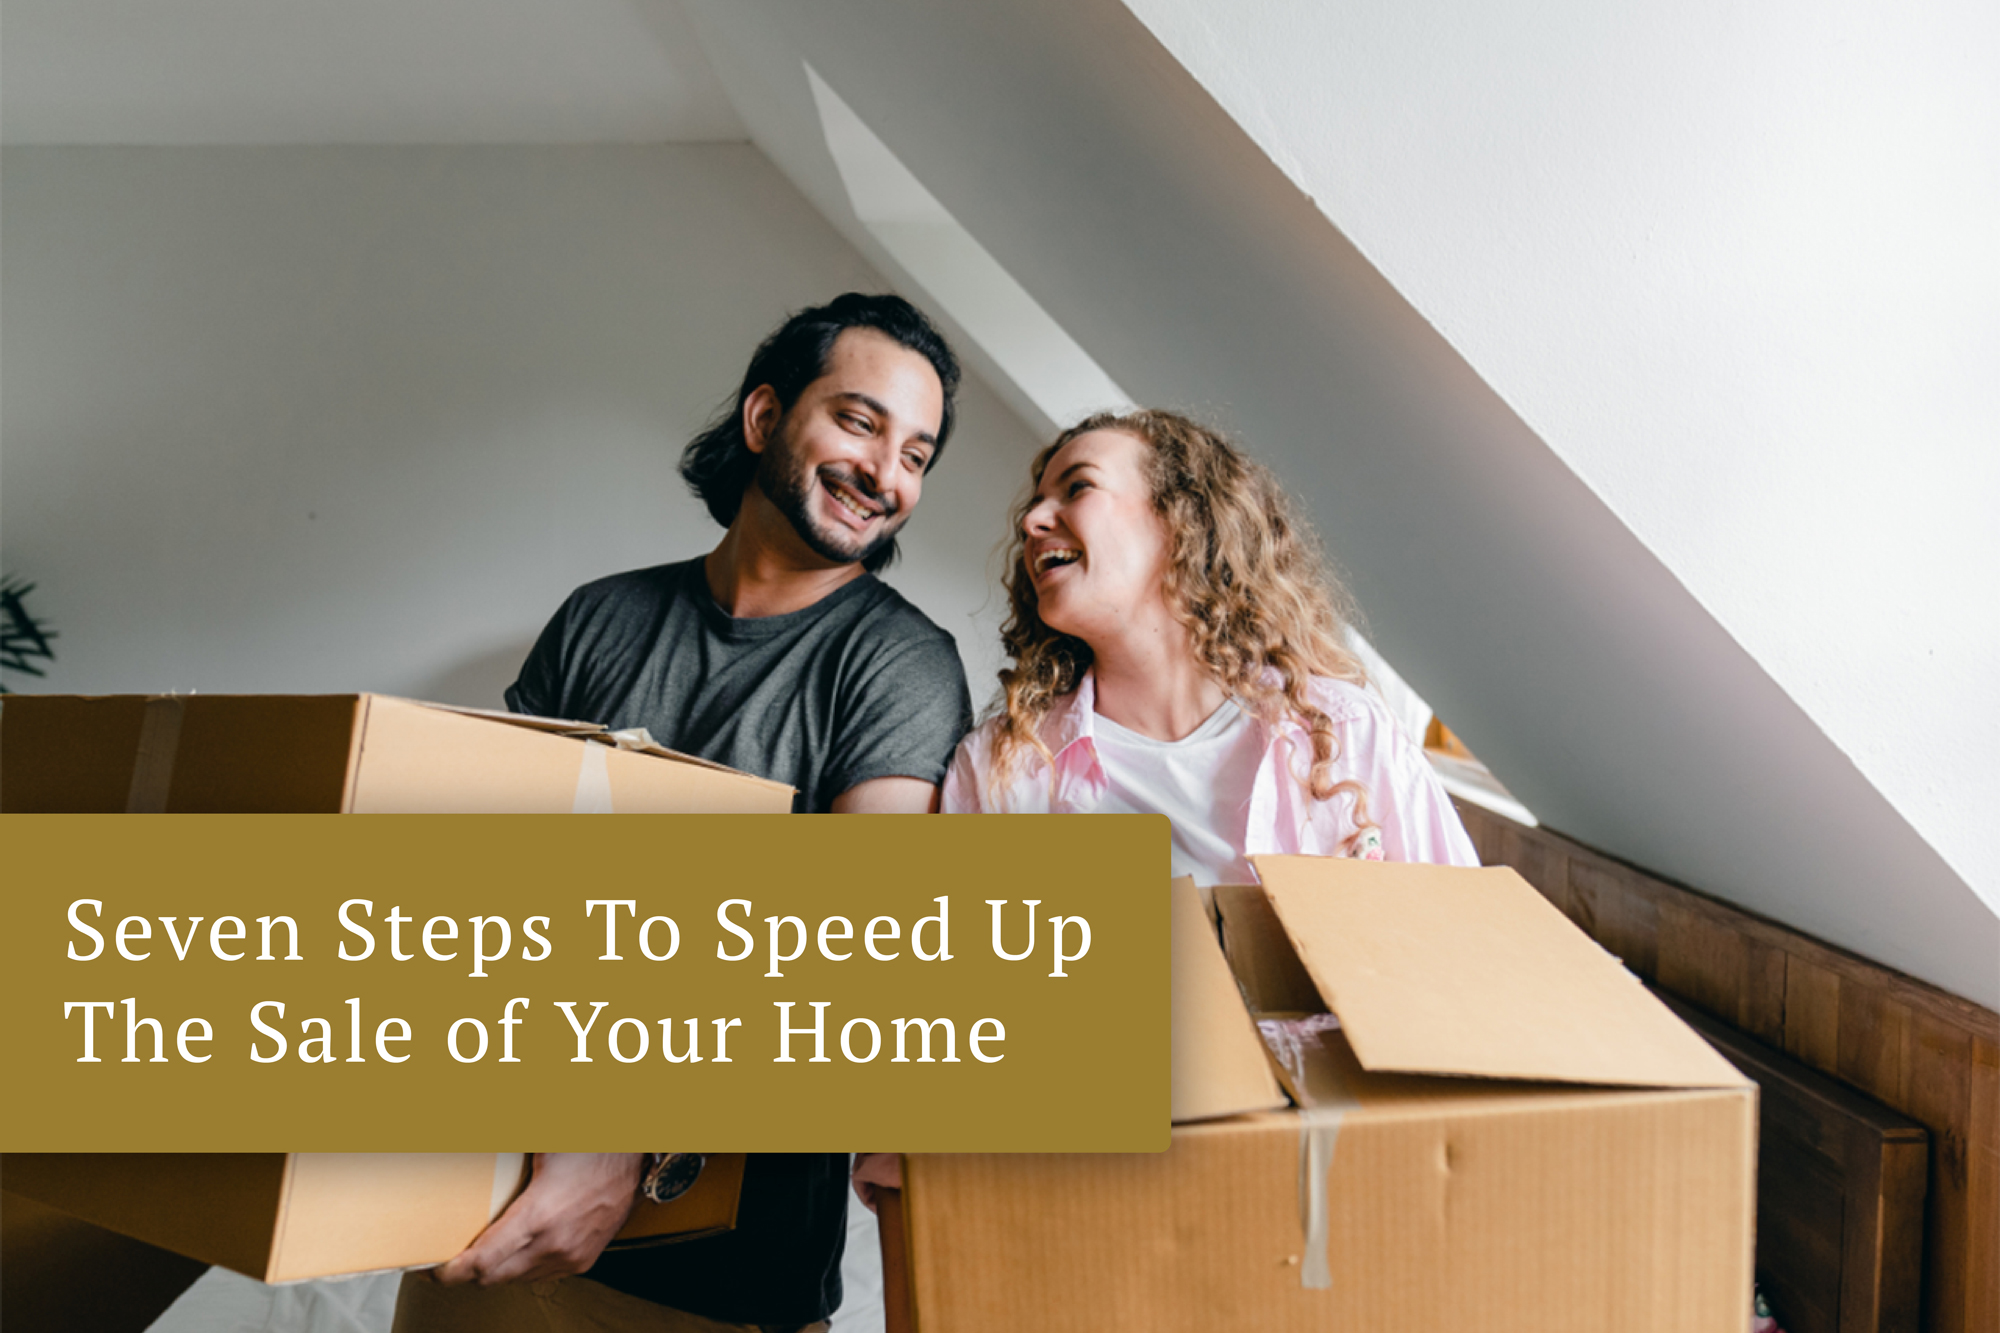 Seven Ways to Speed Up the Sale of YourHome